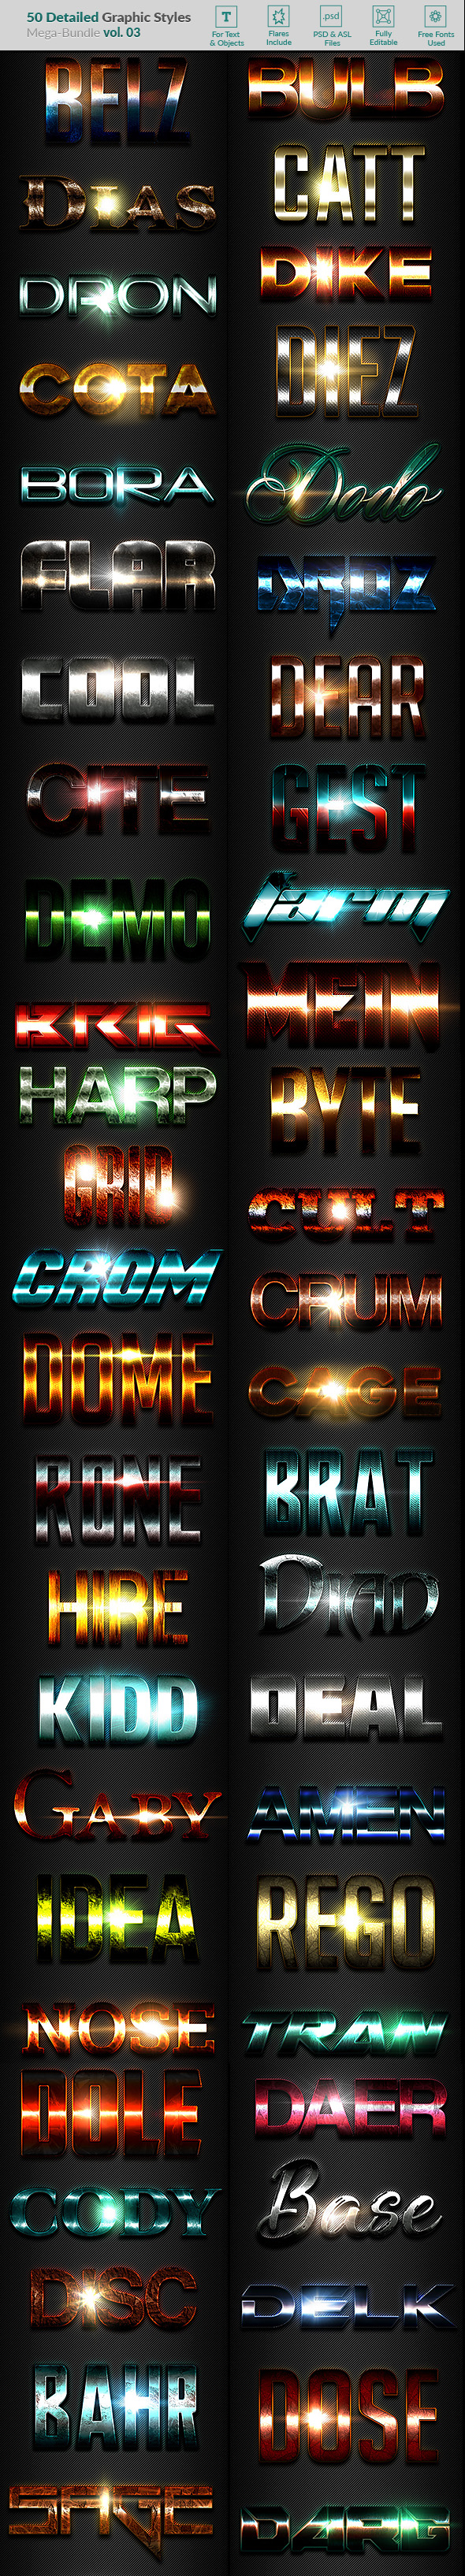 50 Text Effects - Bundle Vol. 04 - Styles Photoshop